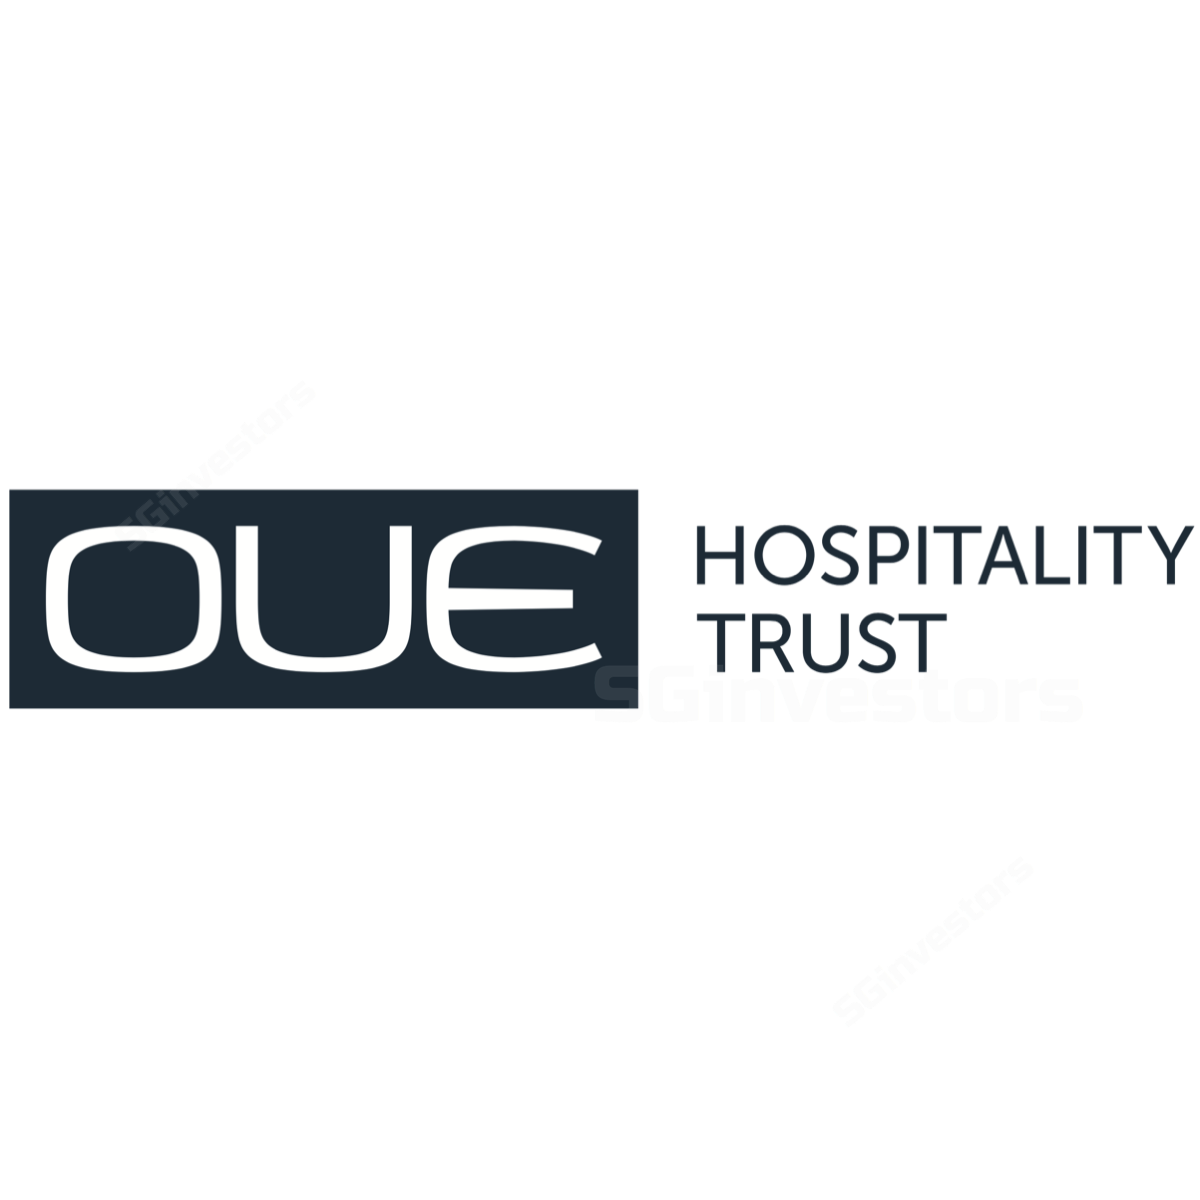 OUE Hospitality Trust - CIMB Research 2017-11-02: 3Q17 RevPAR Improvement Accelerates